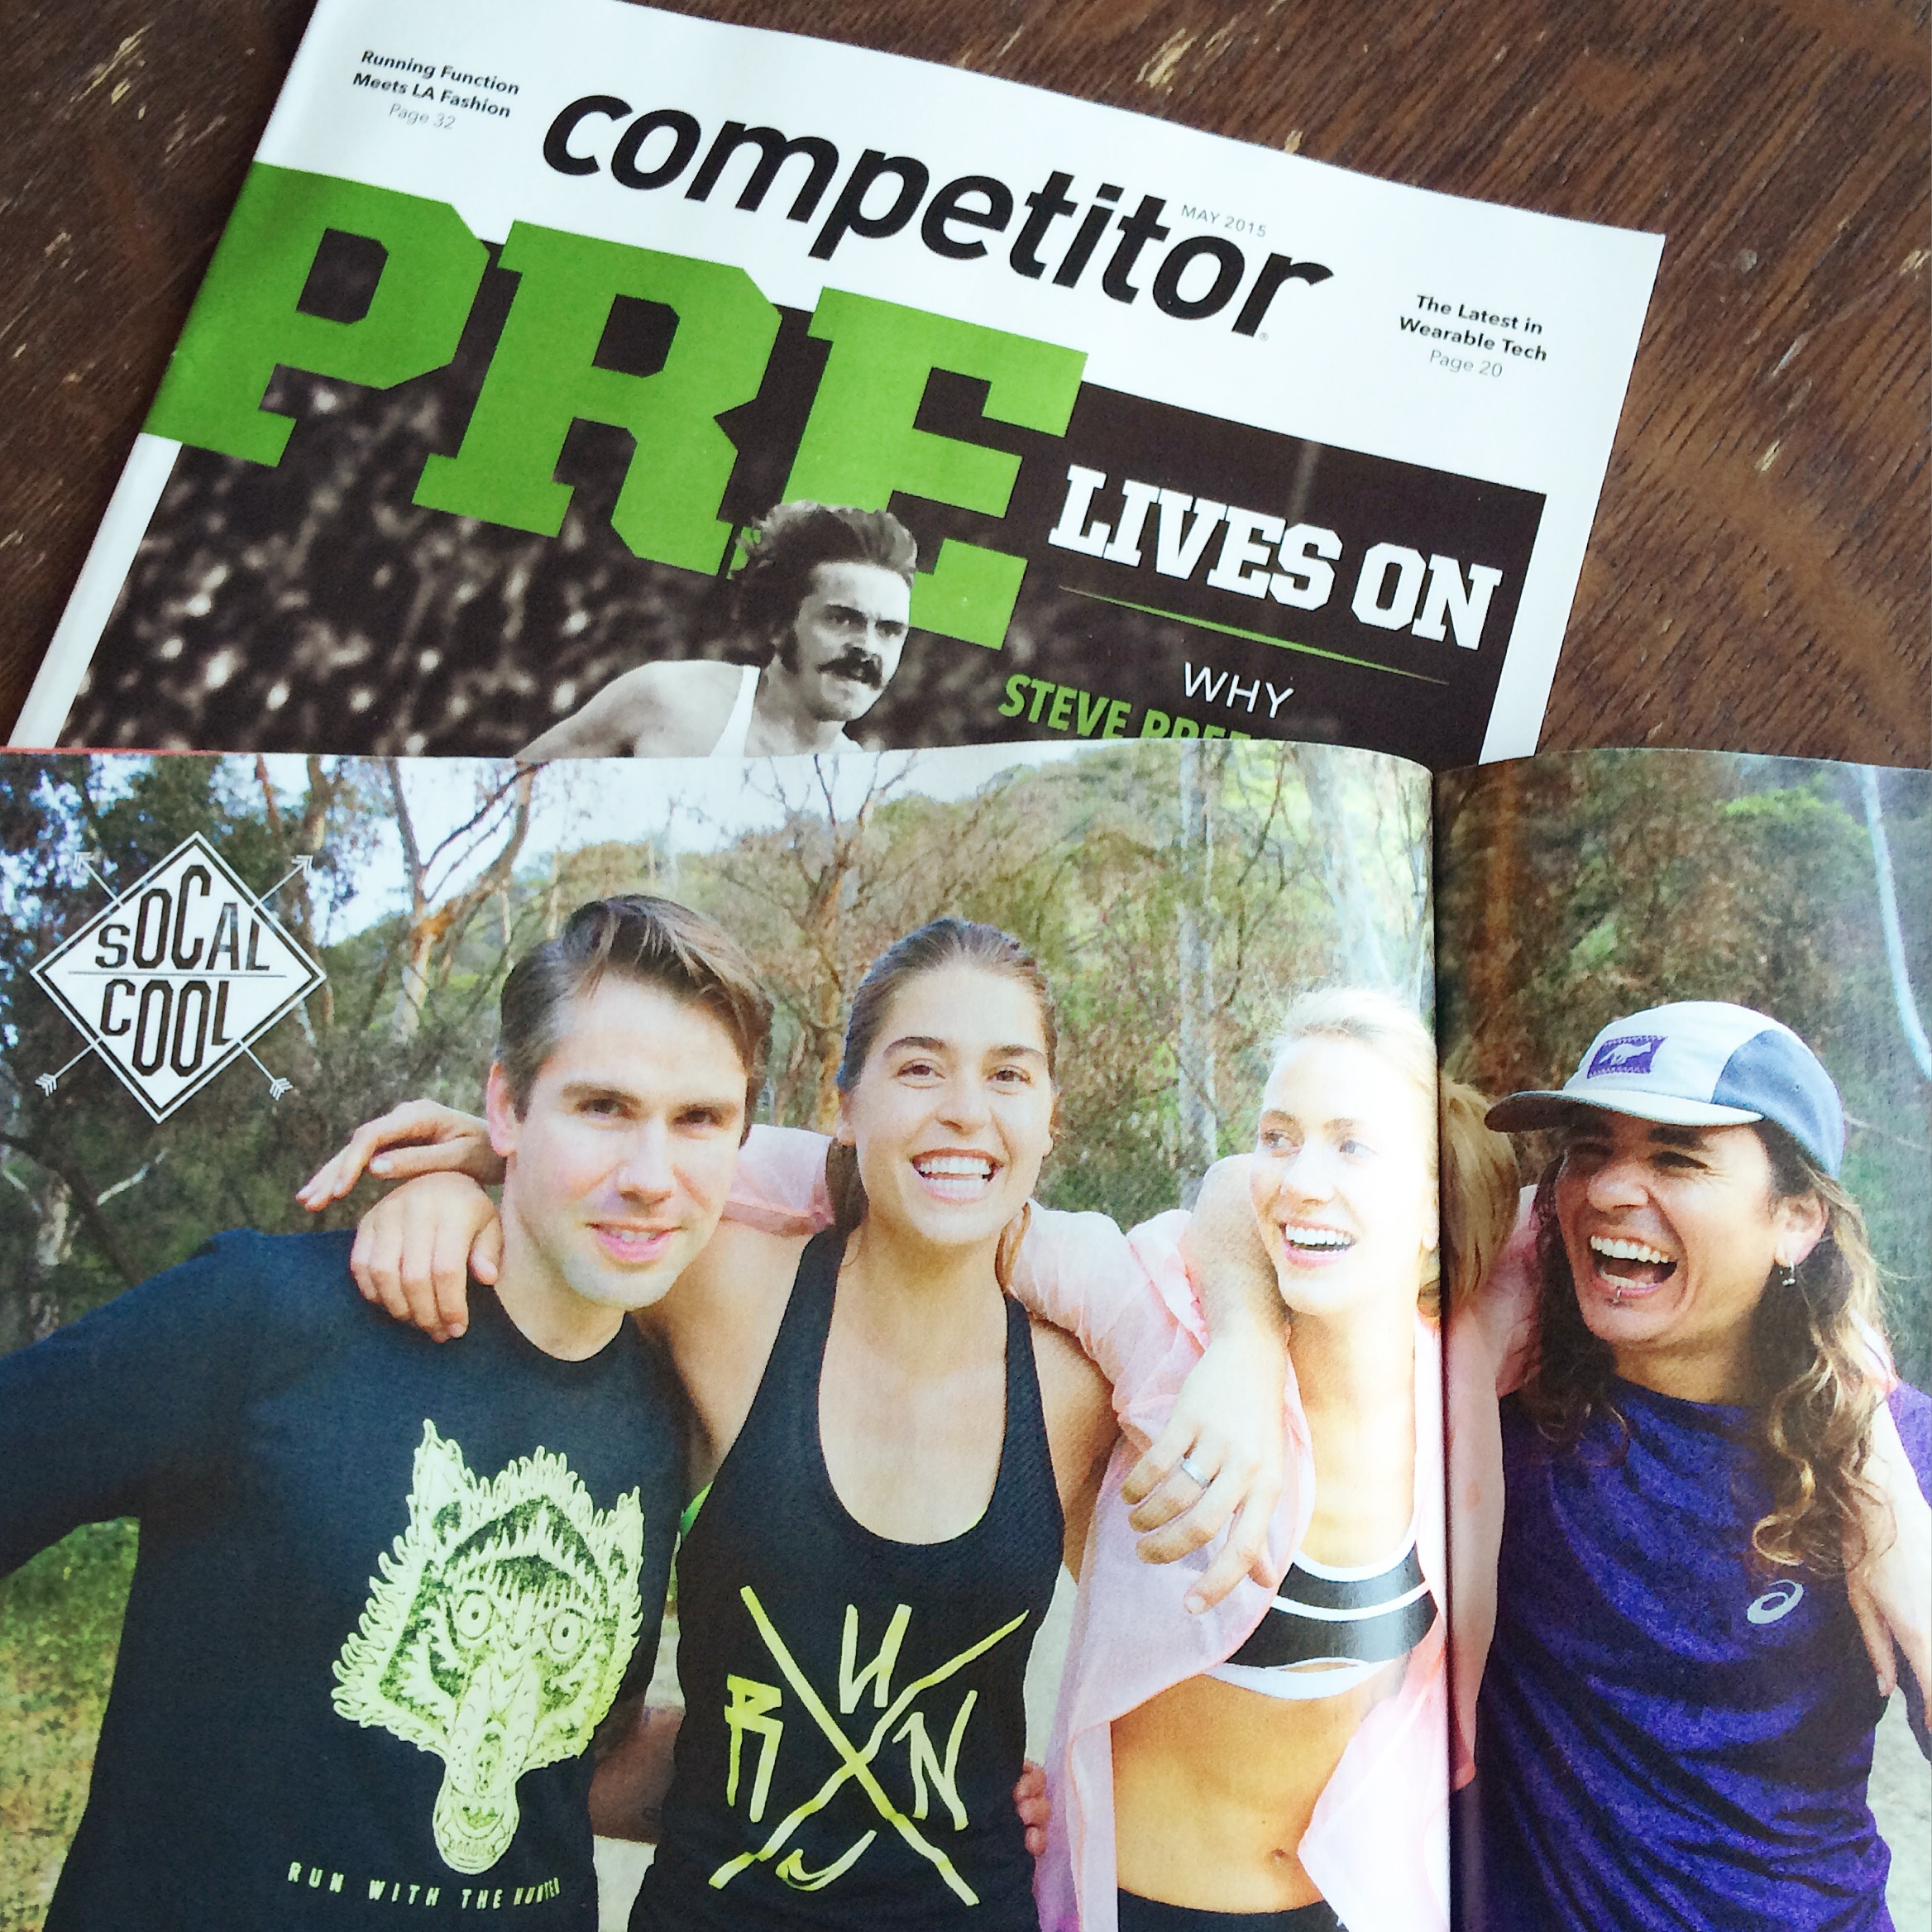 Runyon-Camp-Hat-Made-In-USA-Running-Fitness-Competitor-Magazine-Runyon-Canyon-Apparel